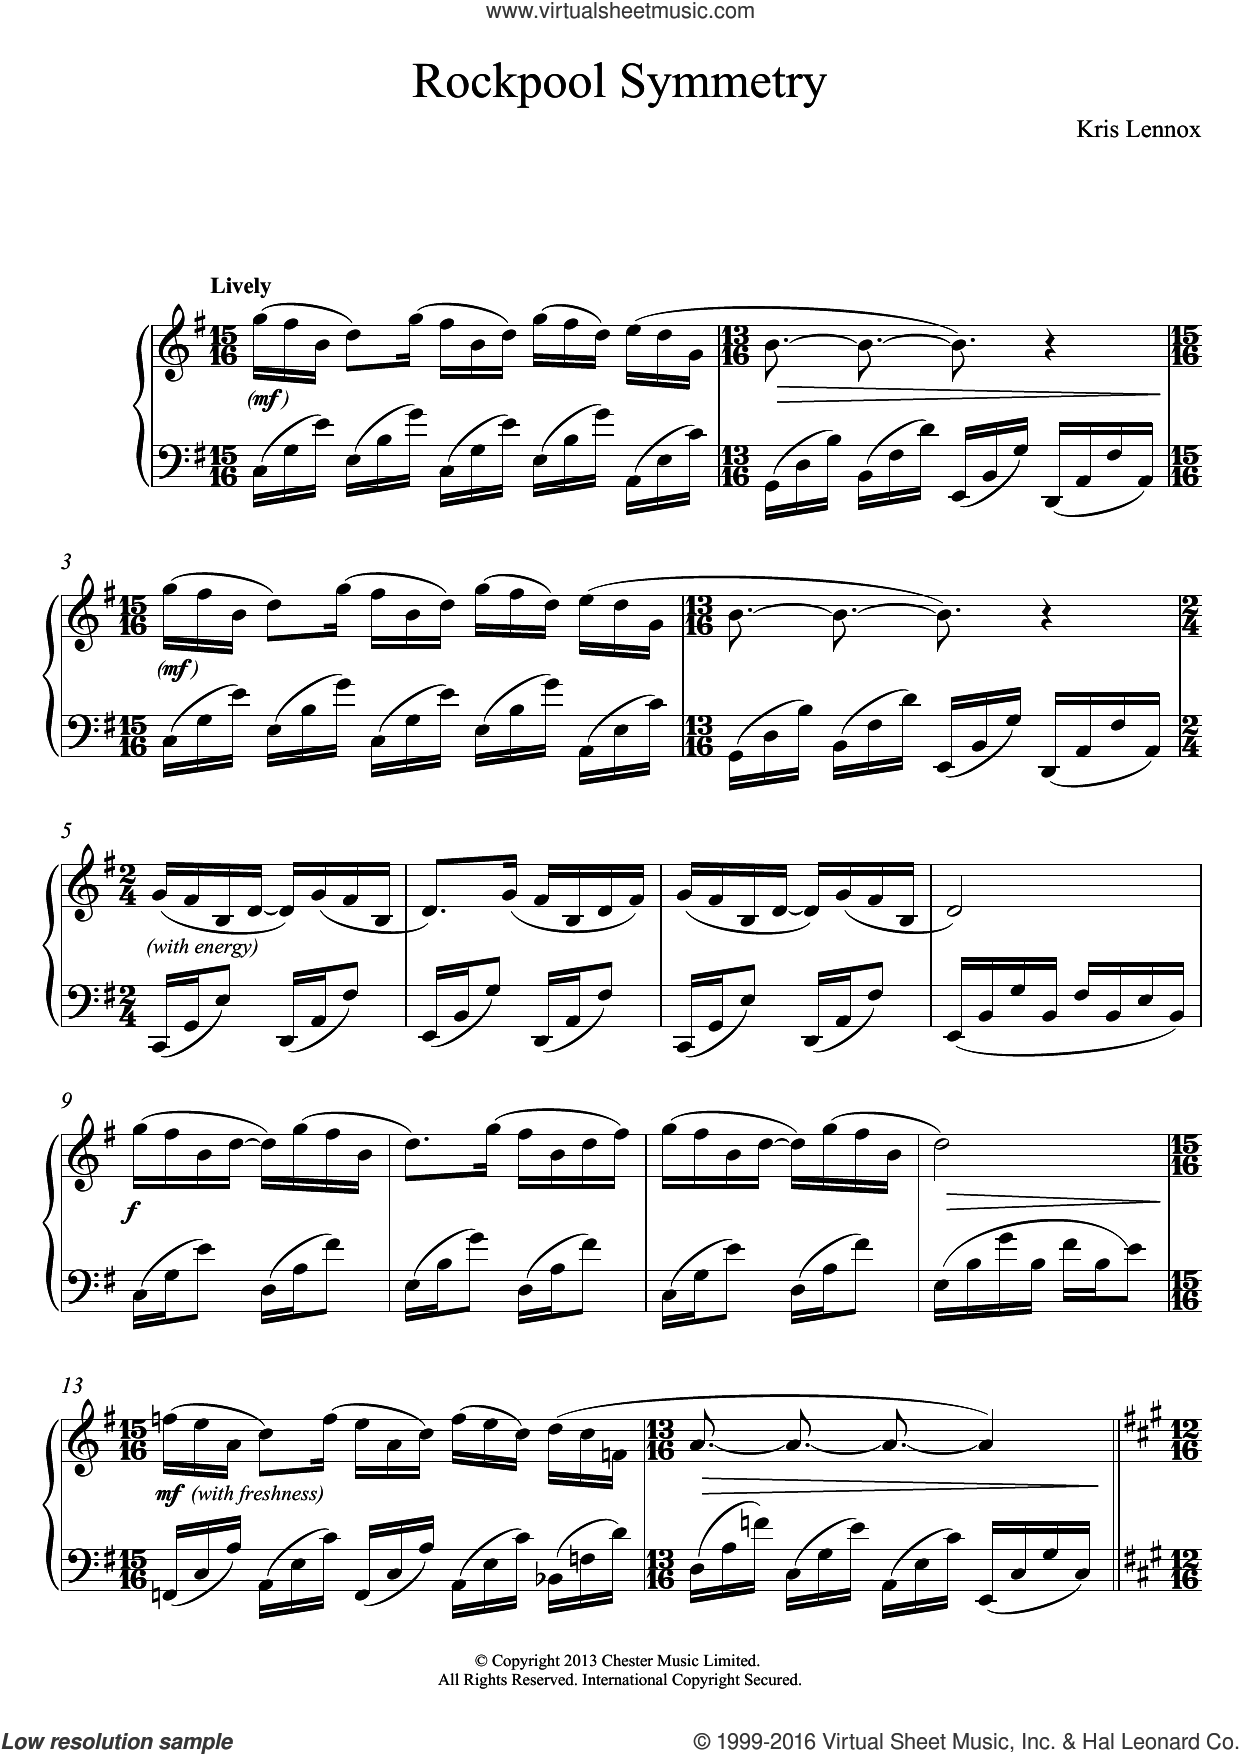 Rockpool Symmetry sheet music for piano solo by Kris Lennox, classical score, intermediate skill level